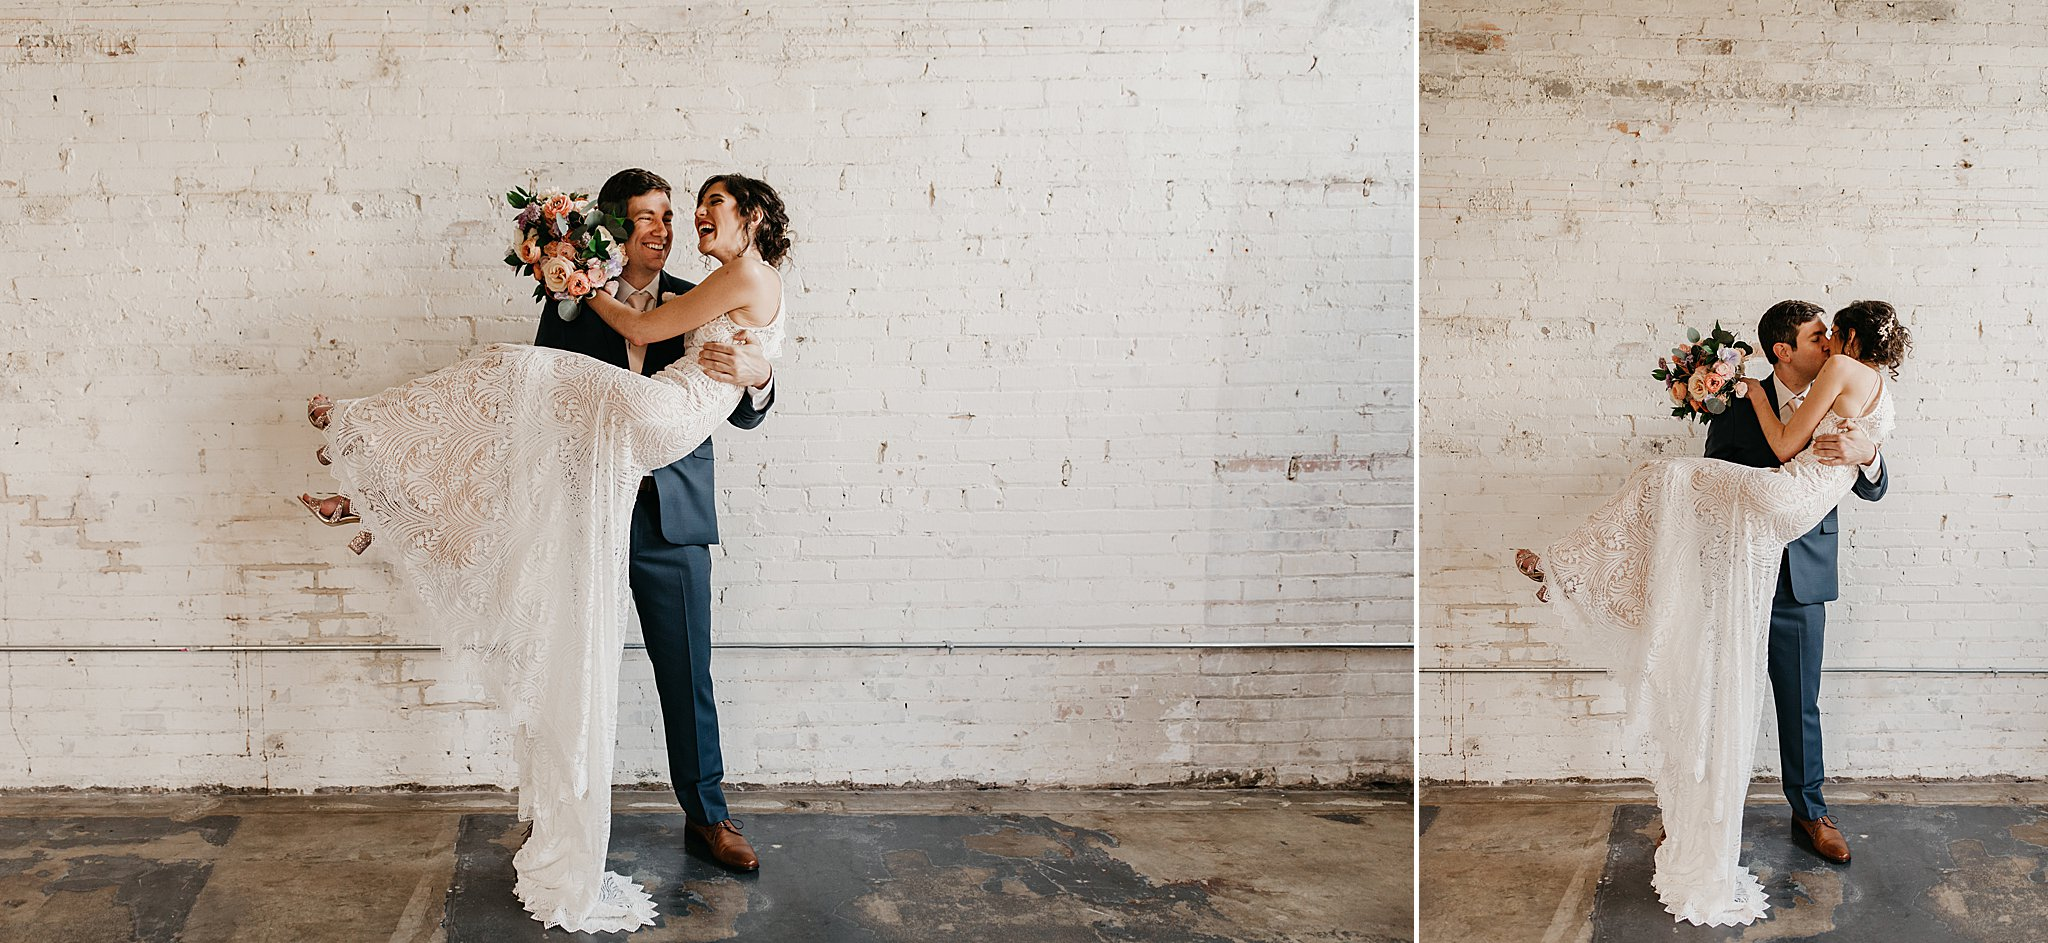 Wilderlove Co_Wedding Photographer_Industrial Wedding_Jewish Wedding_Dallas Texas Wedding_Brake & Clutch Warehouse_North Texas Photographer_0028.jpg